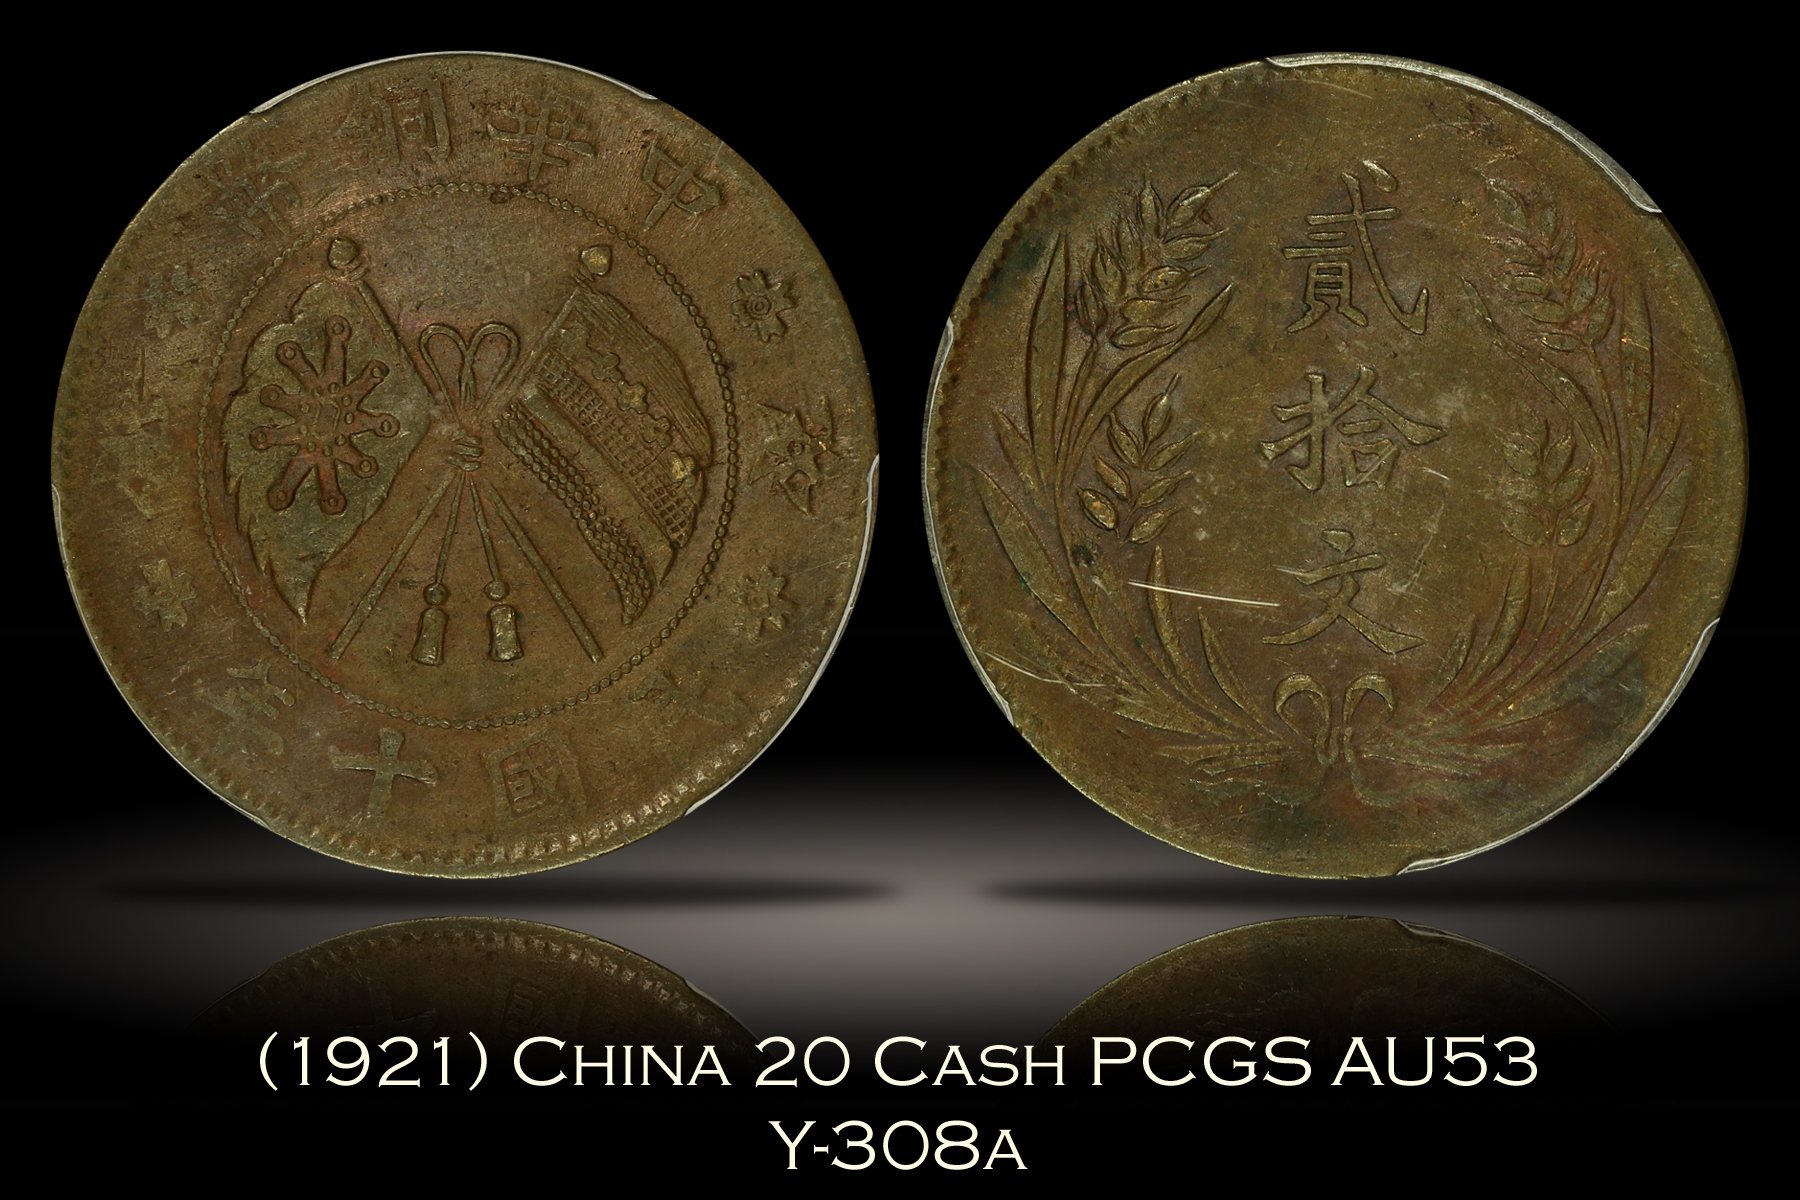 1921 China Republic 20 Cash Y-308a PCGS AU53